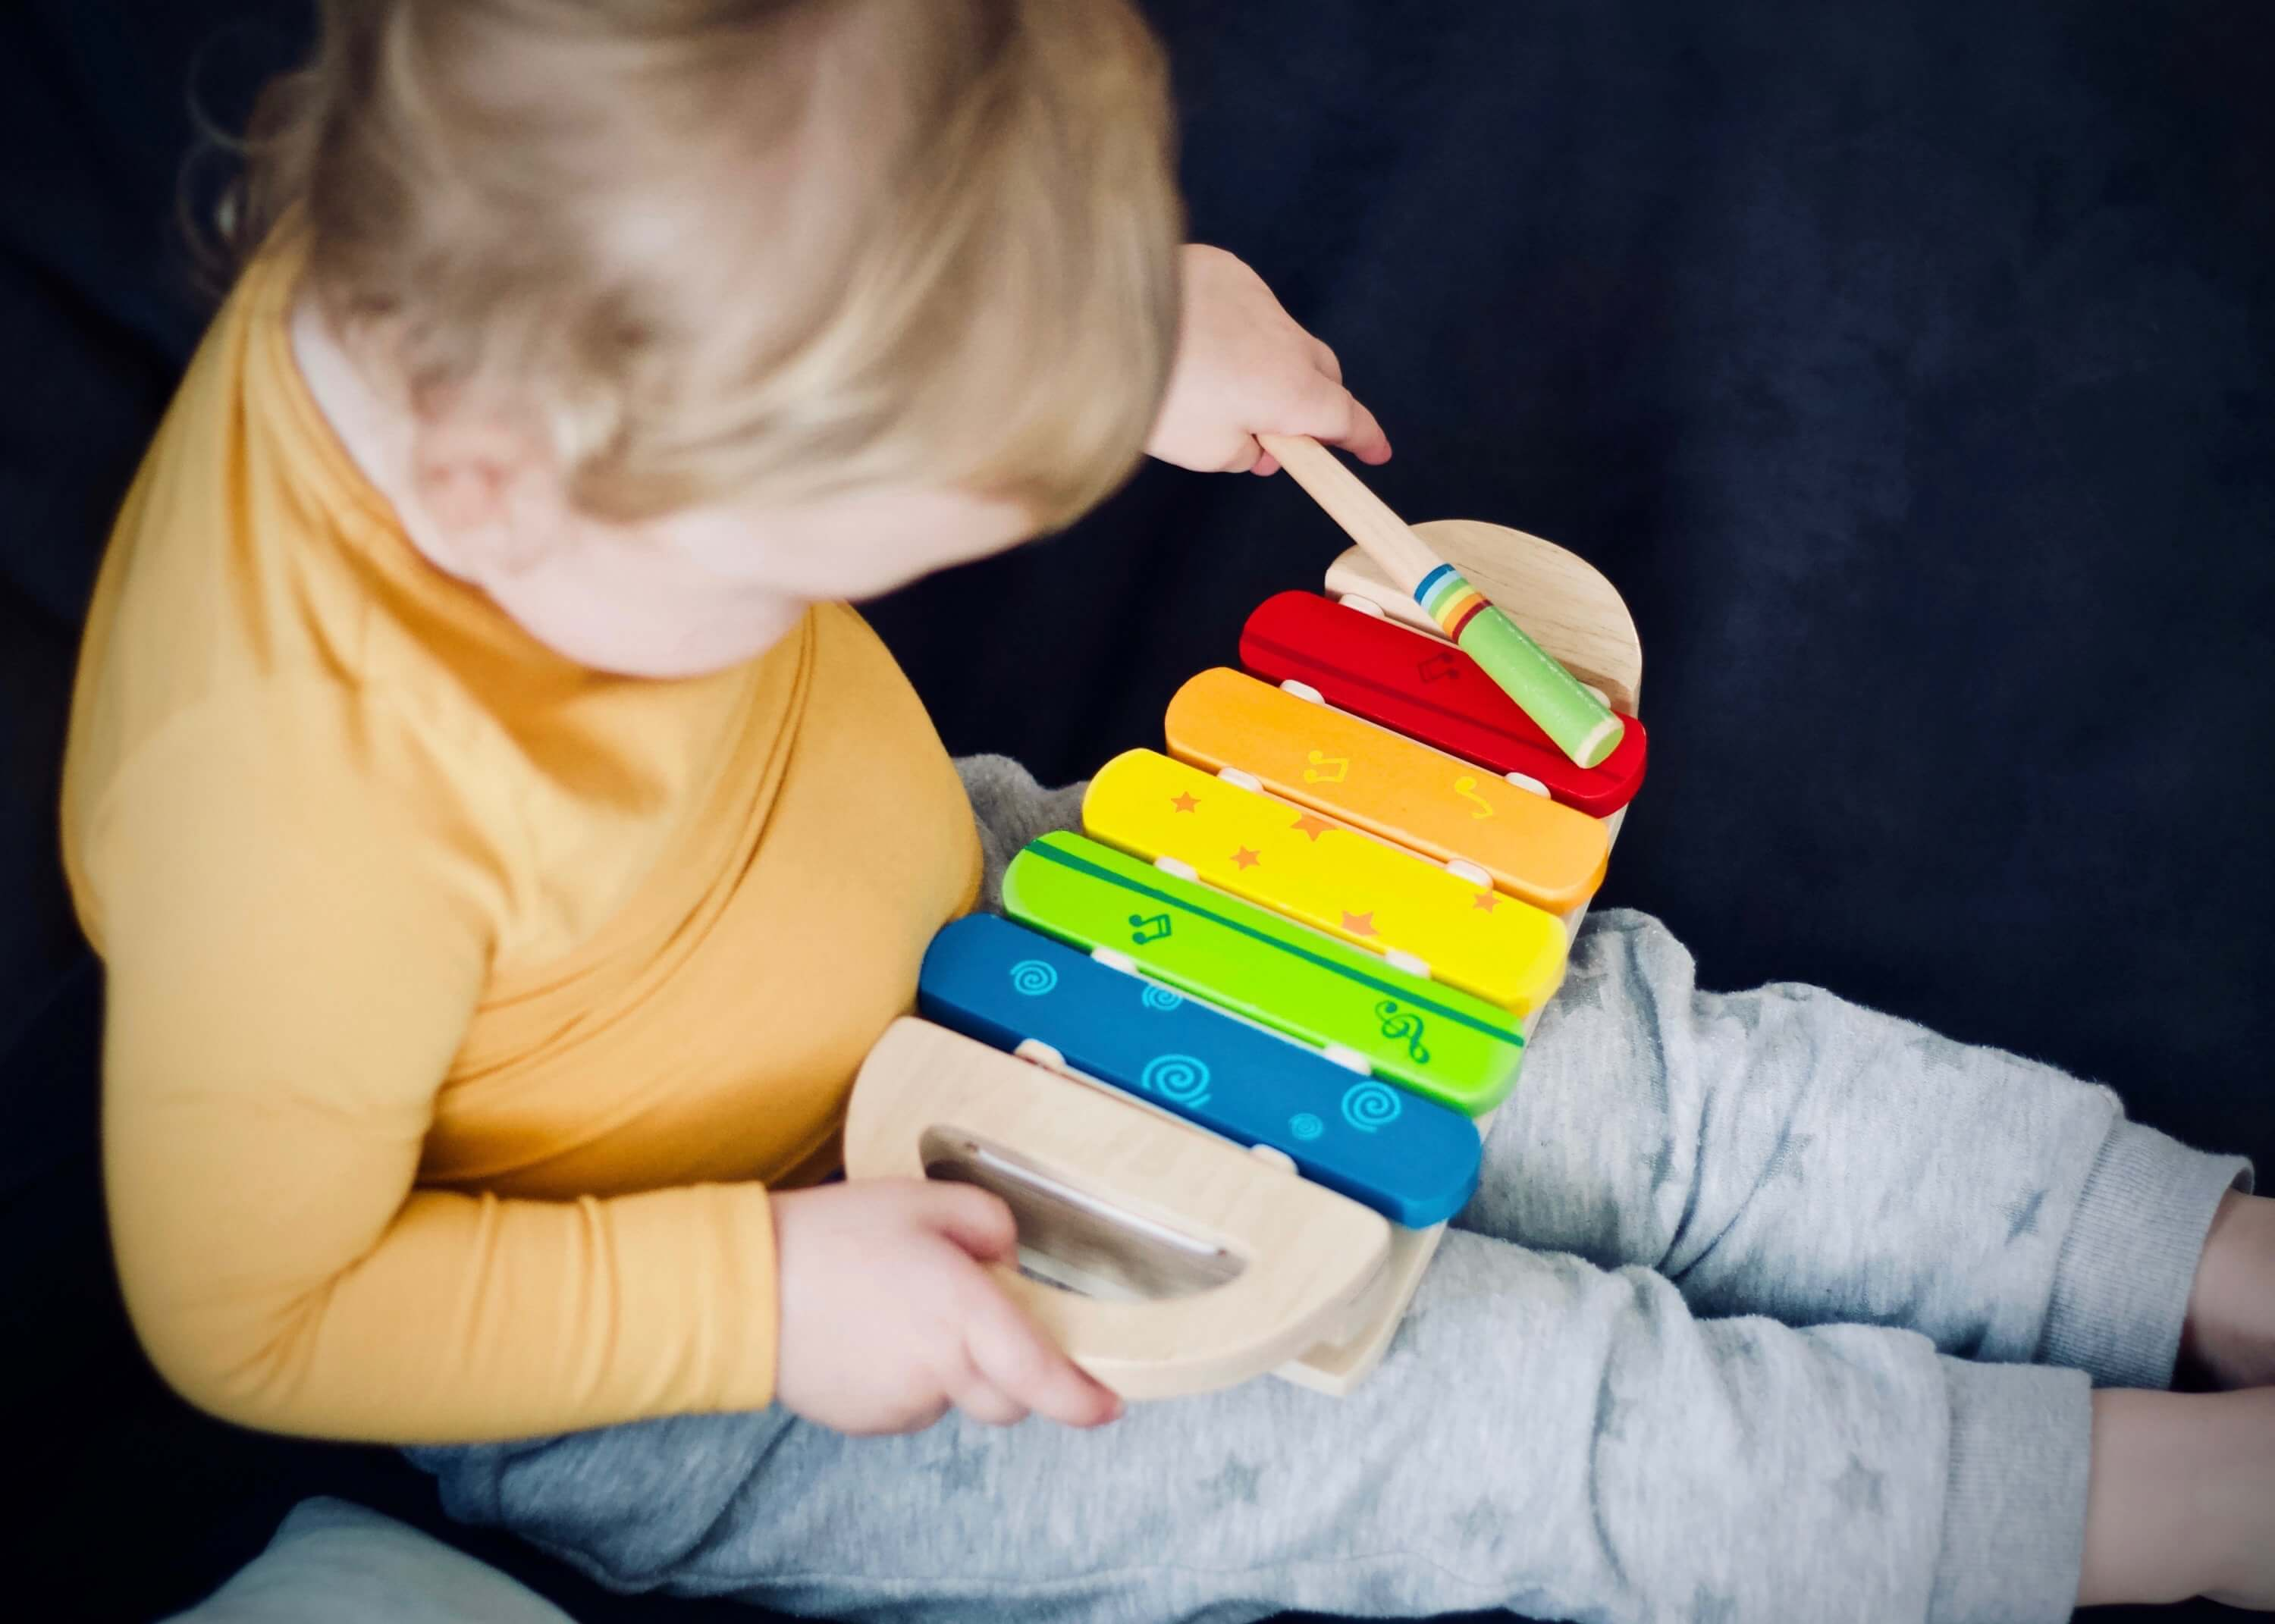 Child Playing Instrument | The Mustcard